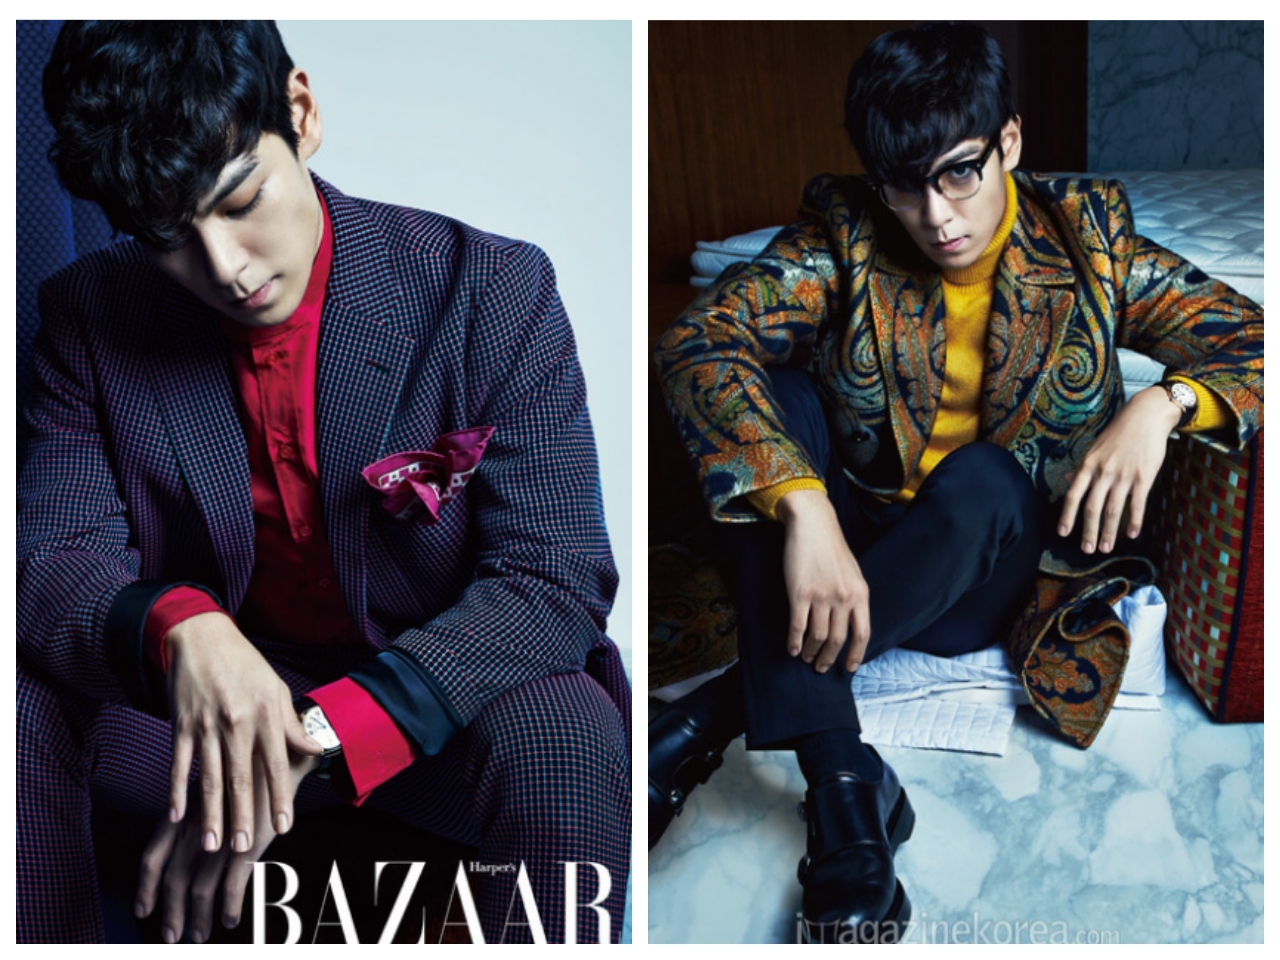 Top - Harper's Bazaar Sept (3)